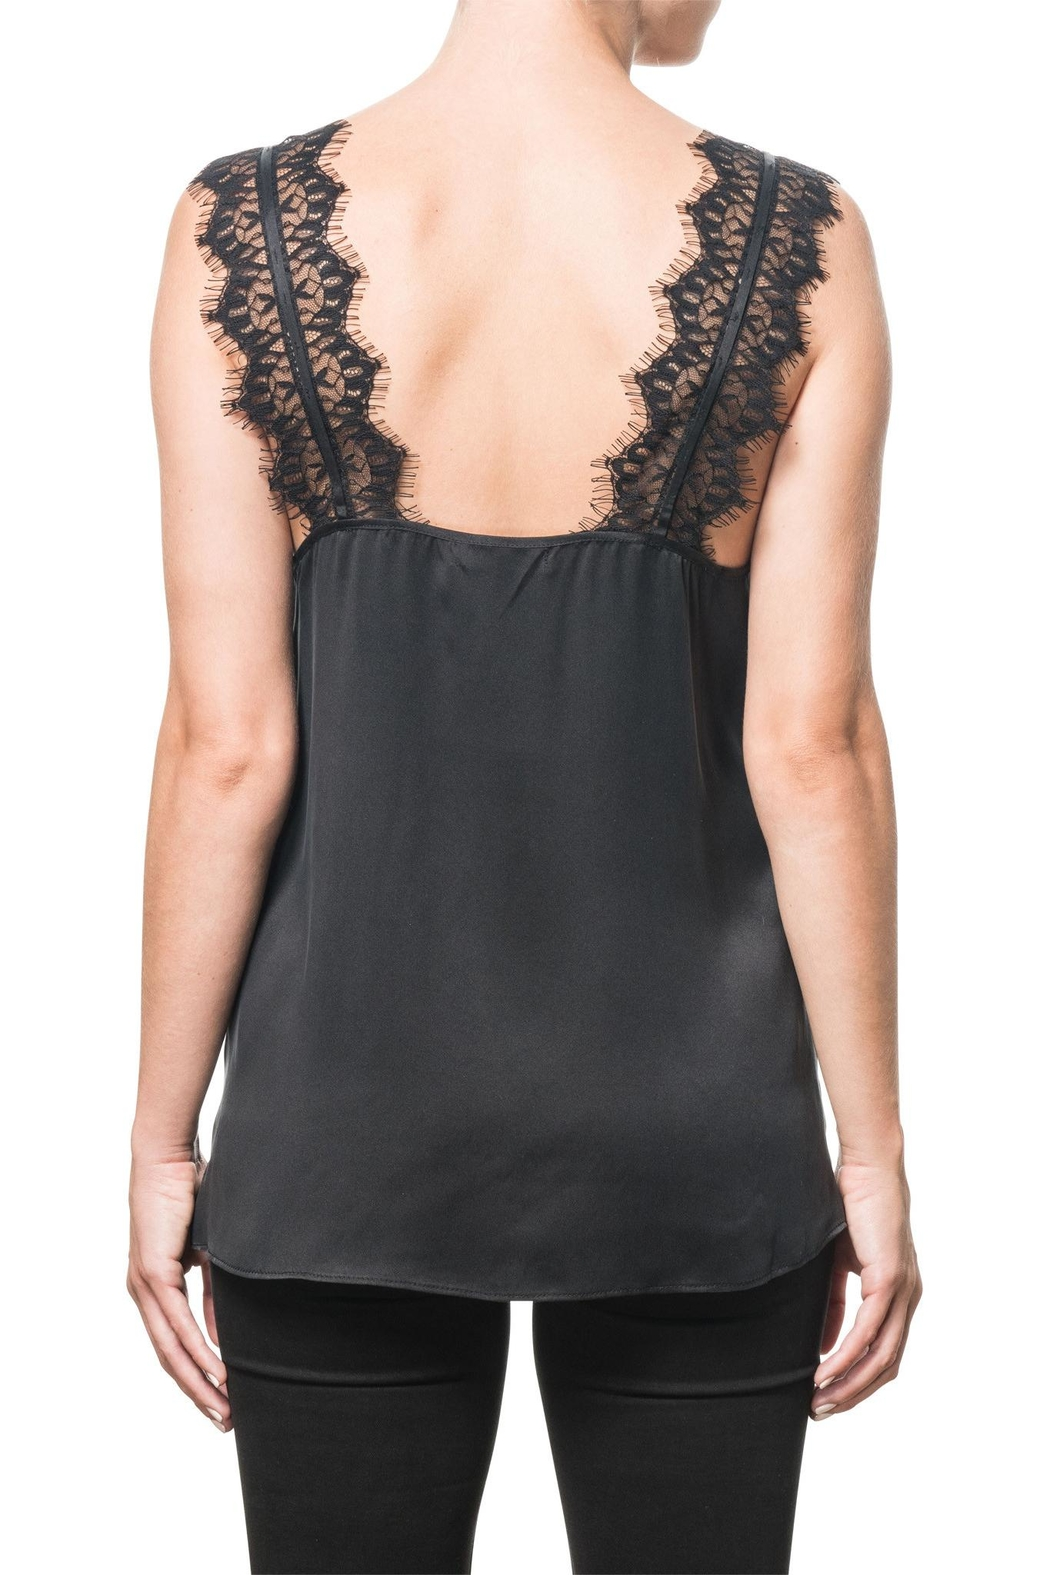 Cami NYC Charmeuse Lace Camisole - Front Full Image